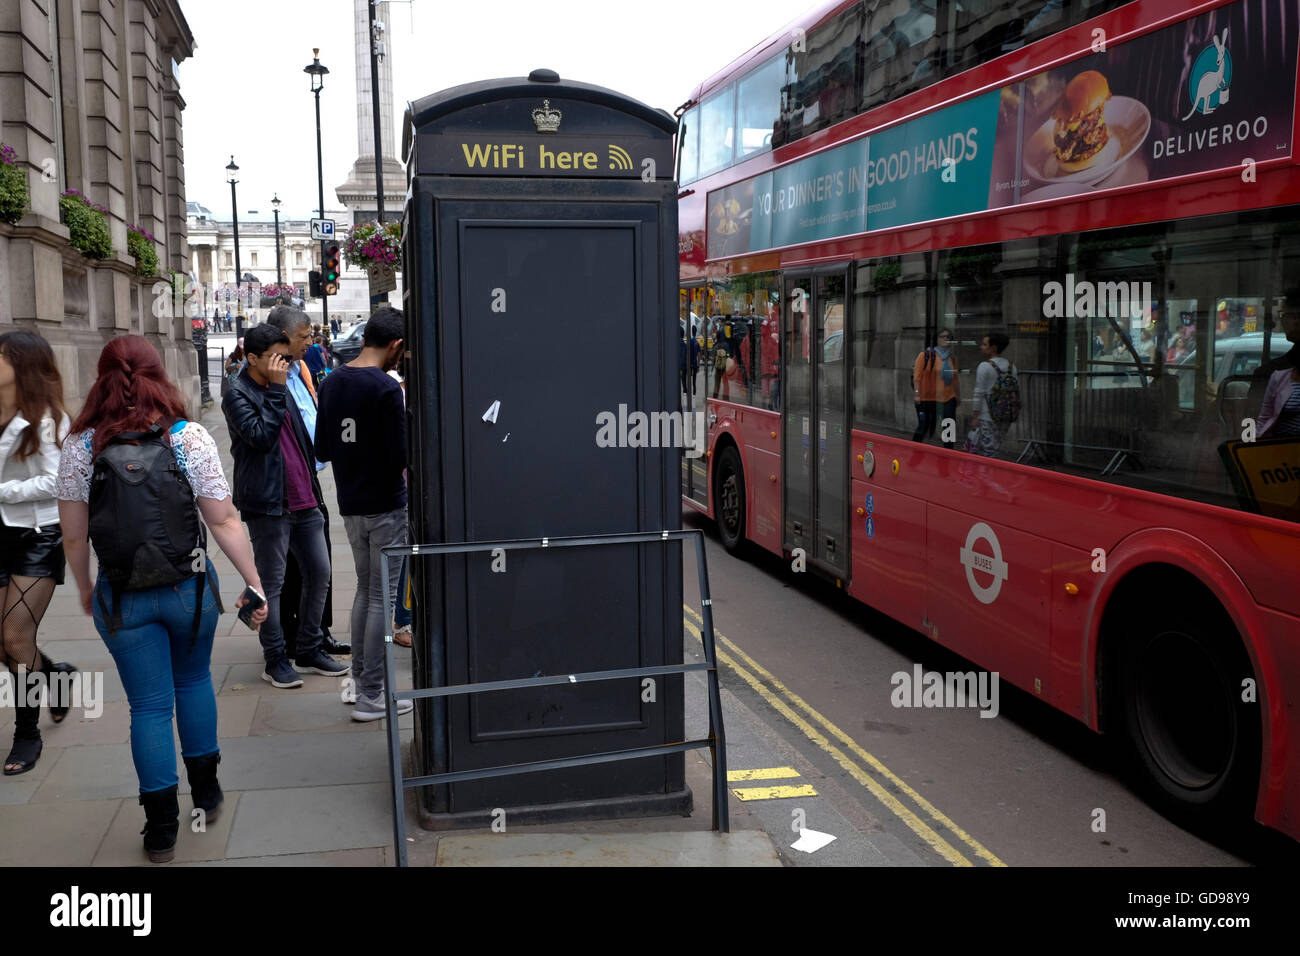 A Cloud City WiFi network point in the City of London - Stock Image